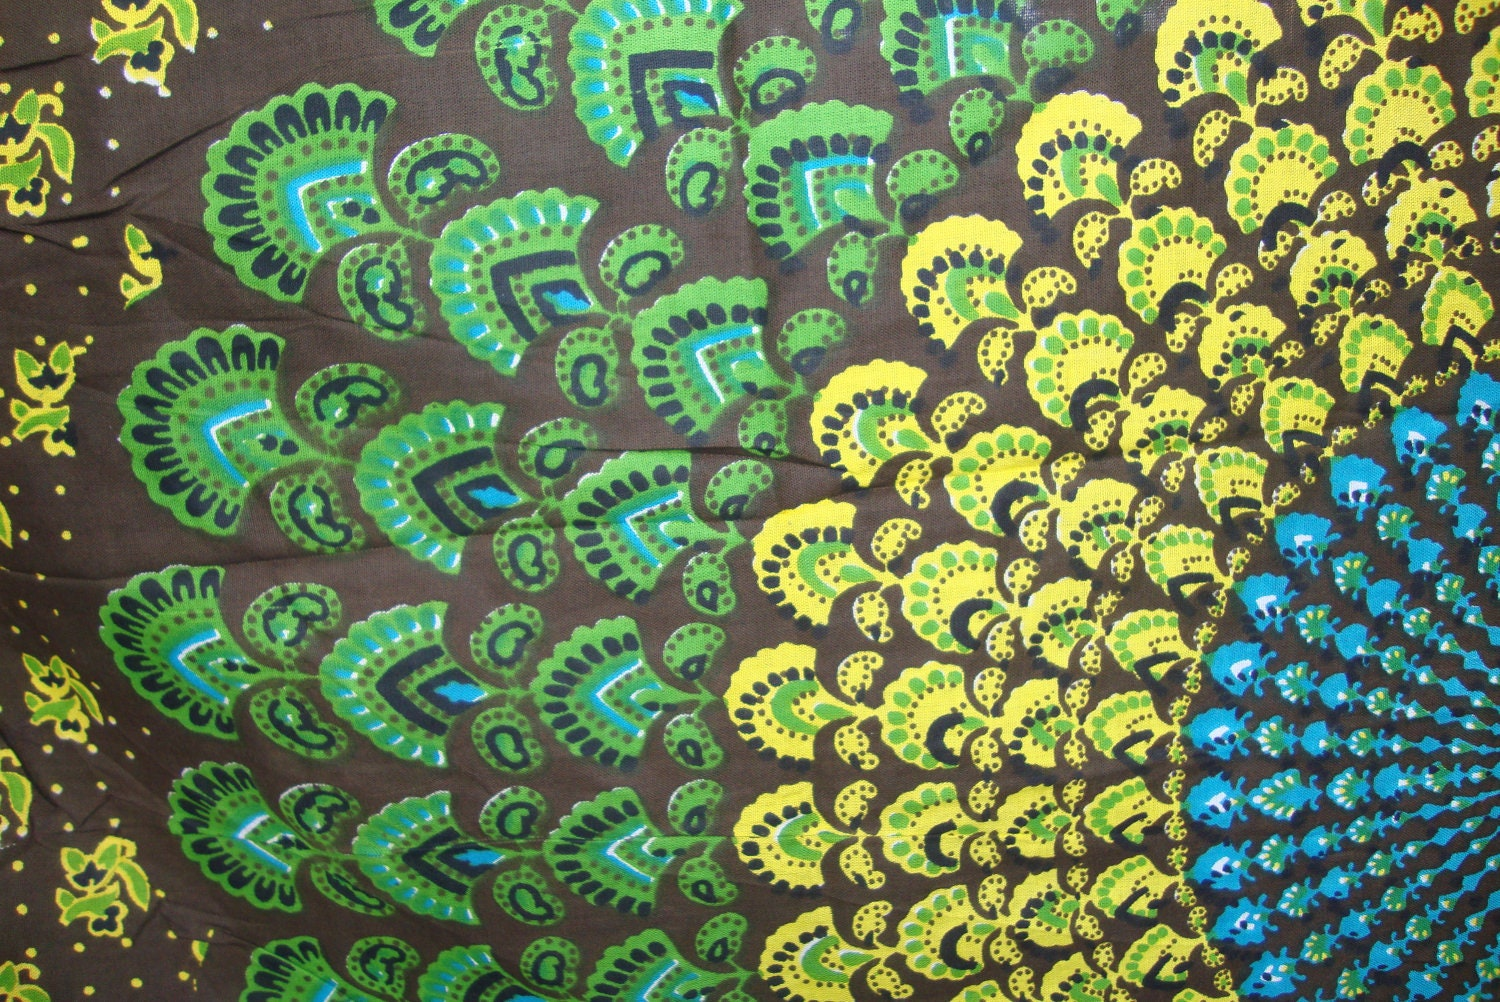 1000+ images about Hippie Patterns on Pinterest